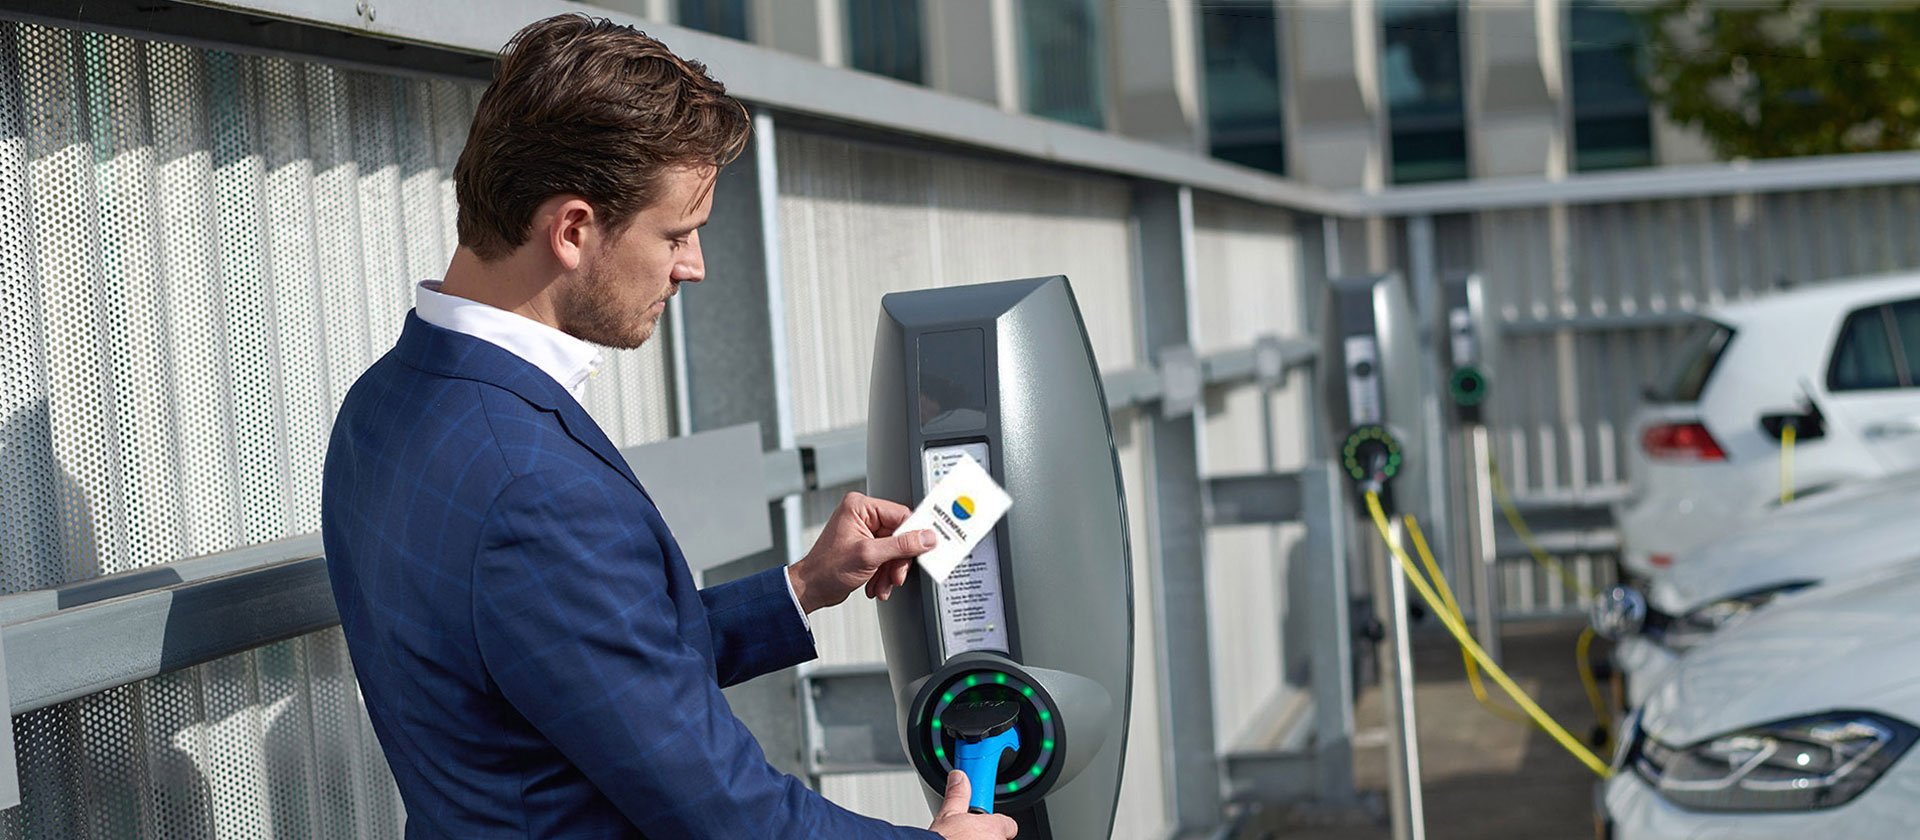 InCharge electric vehicle charging point